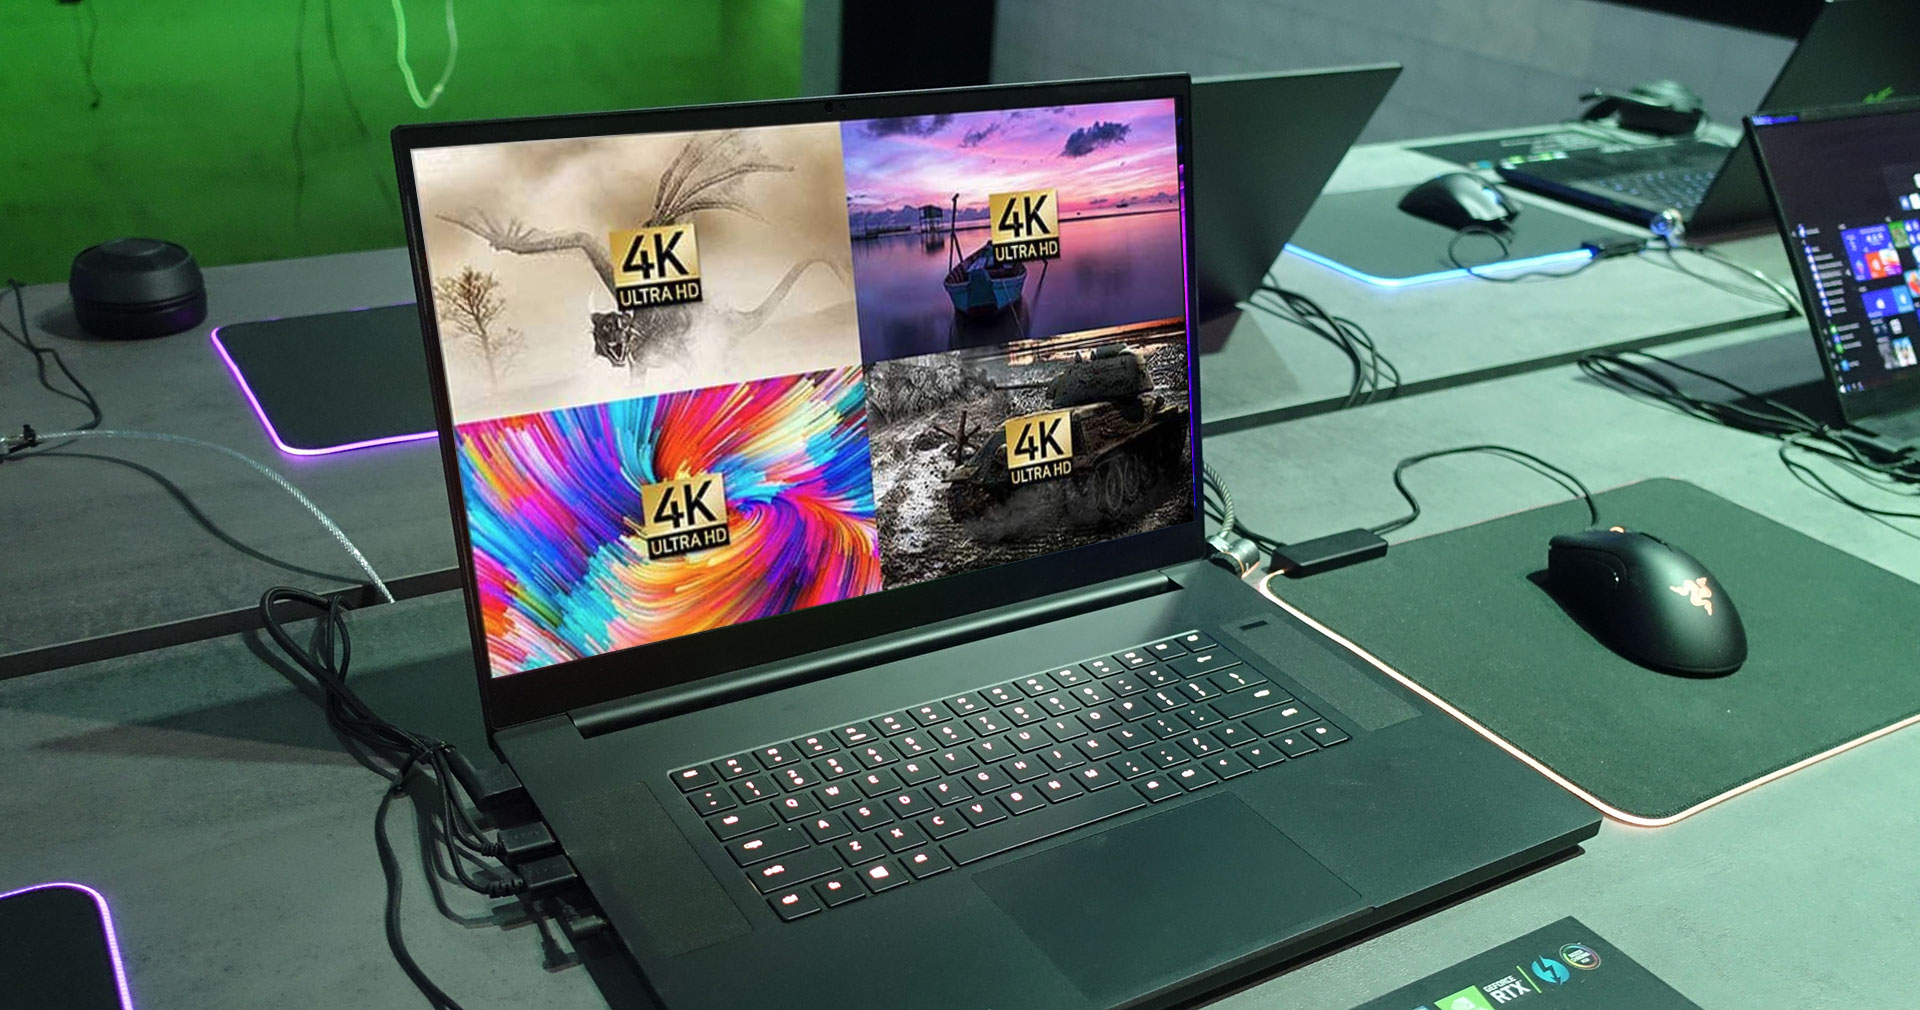 The Blade Pro 17 is among the first gaming laptops announced with the 4K 120 Hz 100% AdobeRGB panel